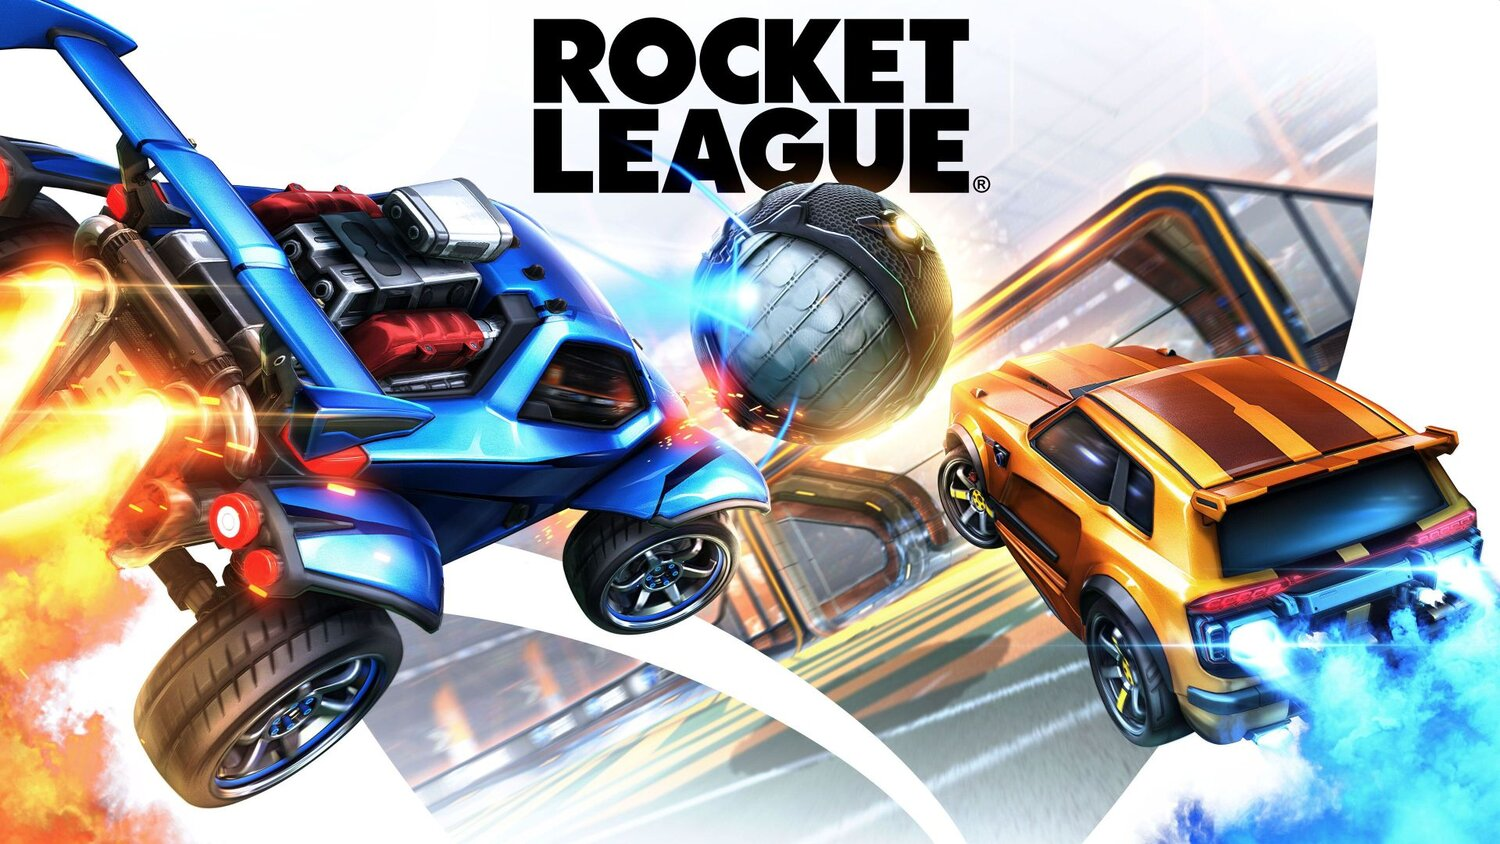 ROCKET LEAGUE Goes Free-to-Play Next Week